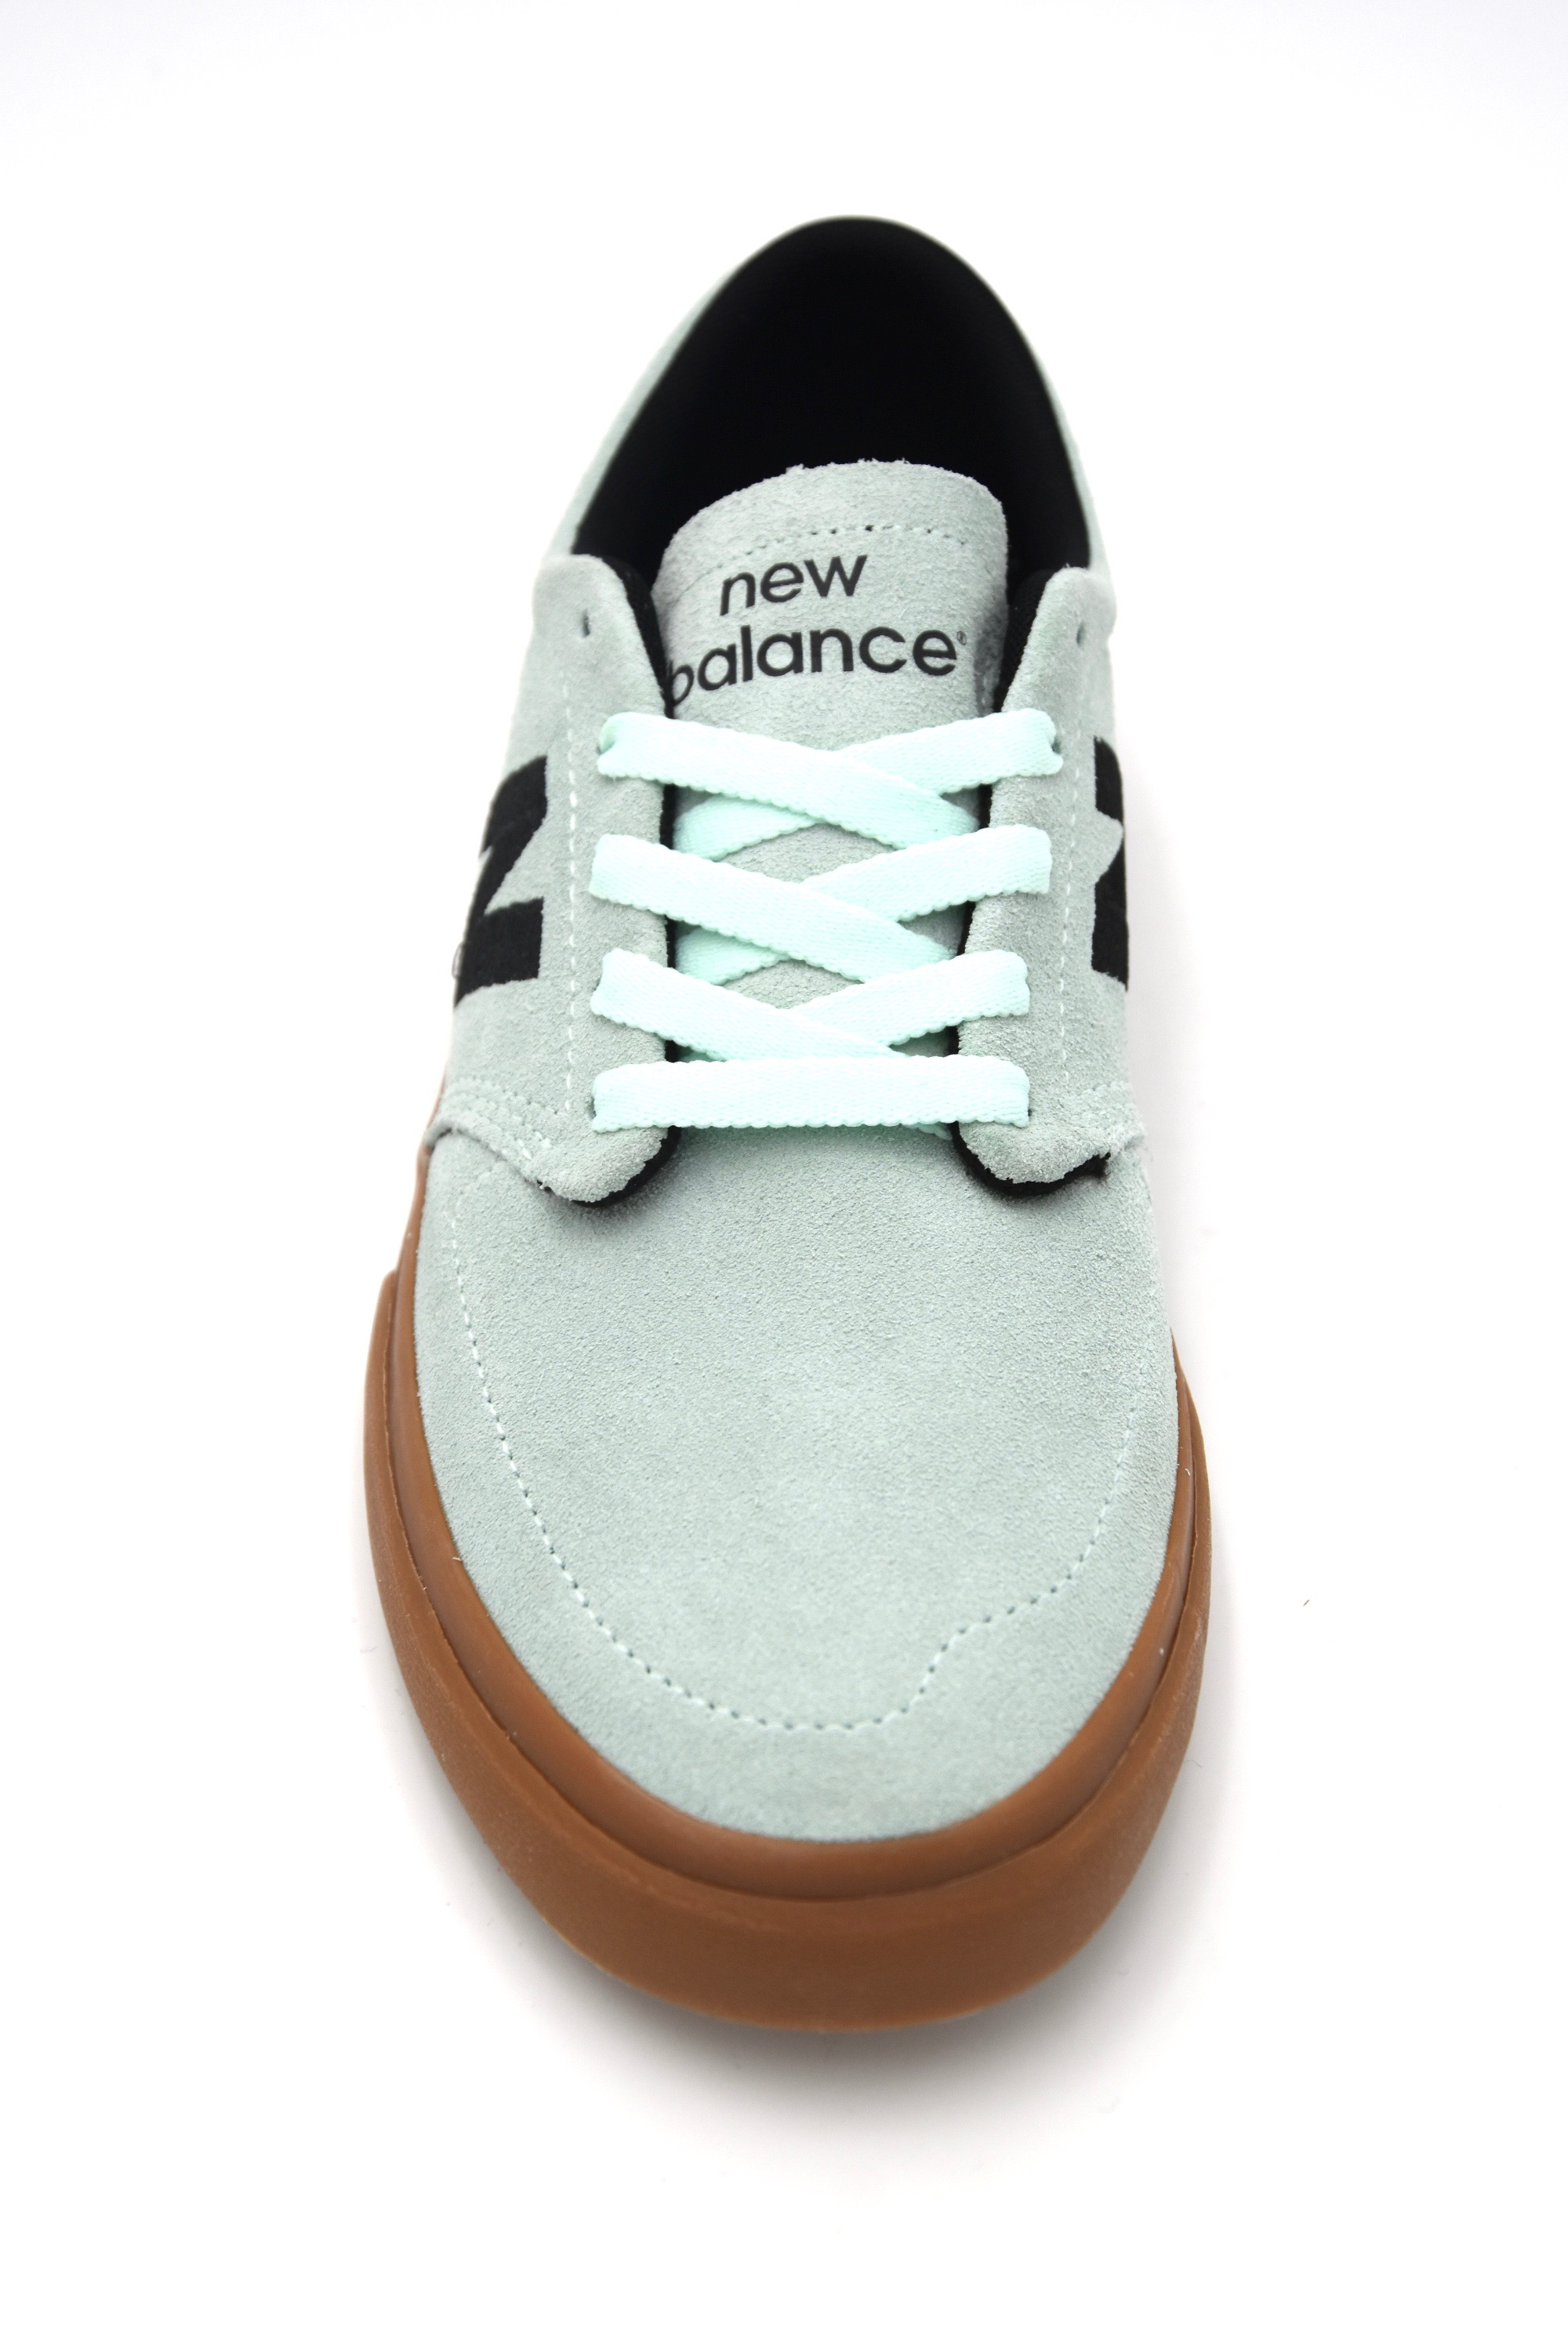 915fe4ebfaf6a Details about NEW BALANCE MAN FREE TIME CASUAL SNEAKER SHOES SUEDE CODE  NM345MNG